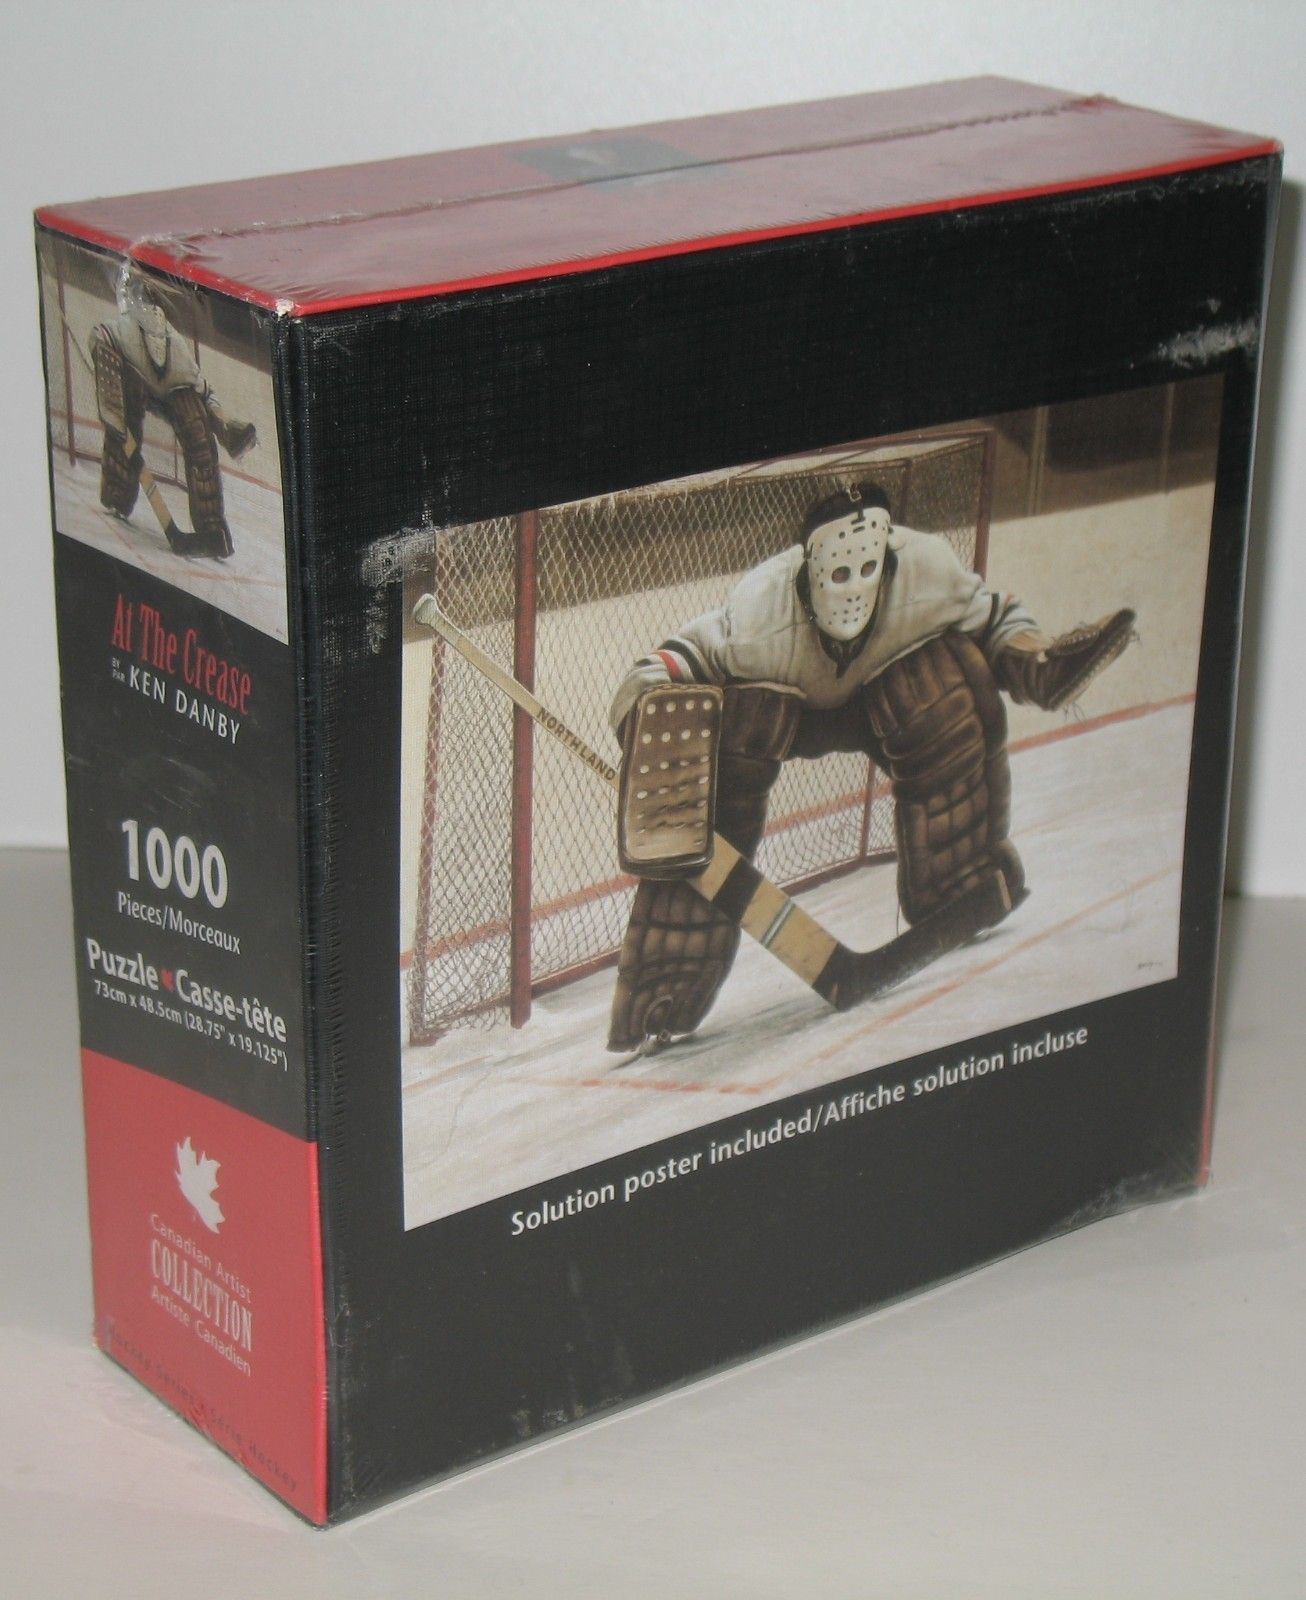 """I SOLD IT ON EBAY: Jigsaw puzzle featuring artwork by Ken Danby called """"At the Crease."""" The puzzle has 1000 pieces and features a hockey goalie. More hockey-themed puzzles available by clicking on this image. #hockey #goalie #kendanby"""